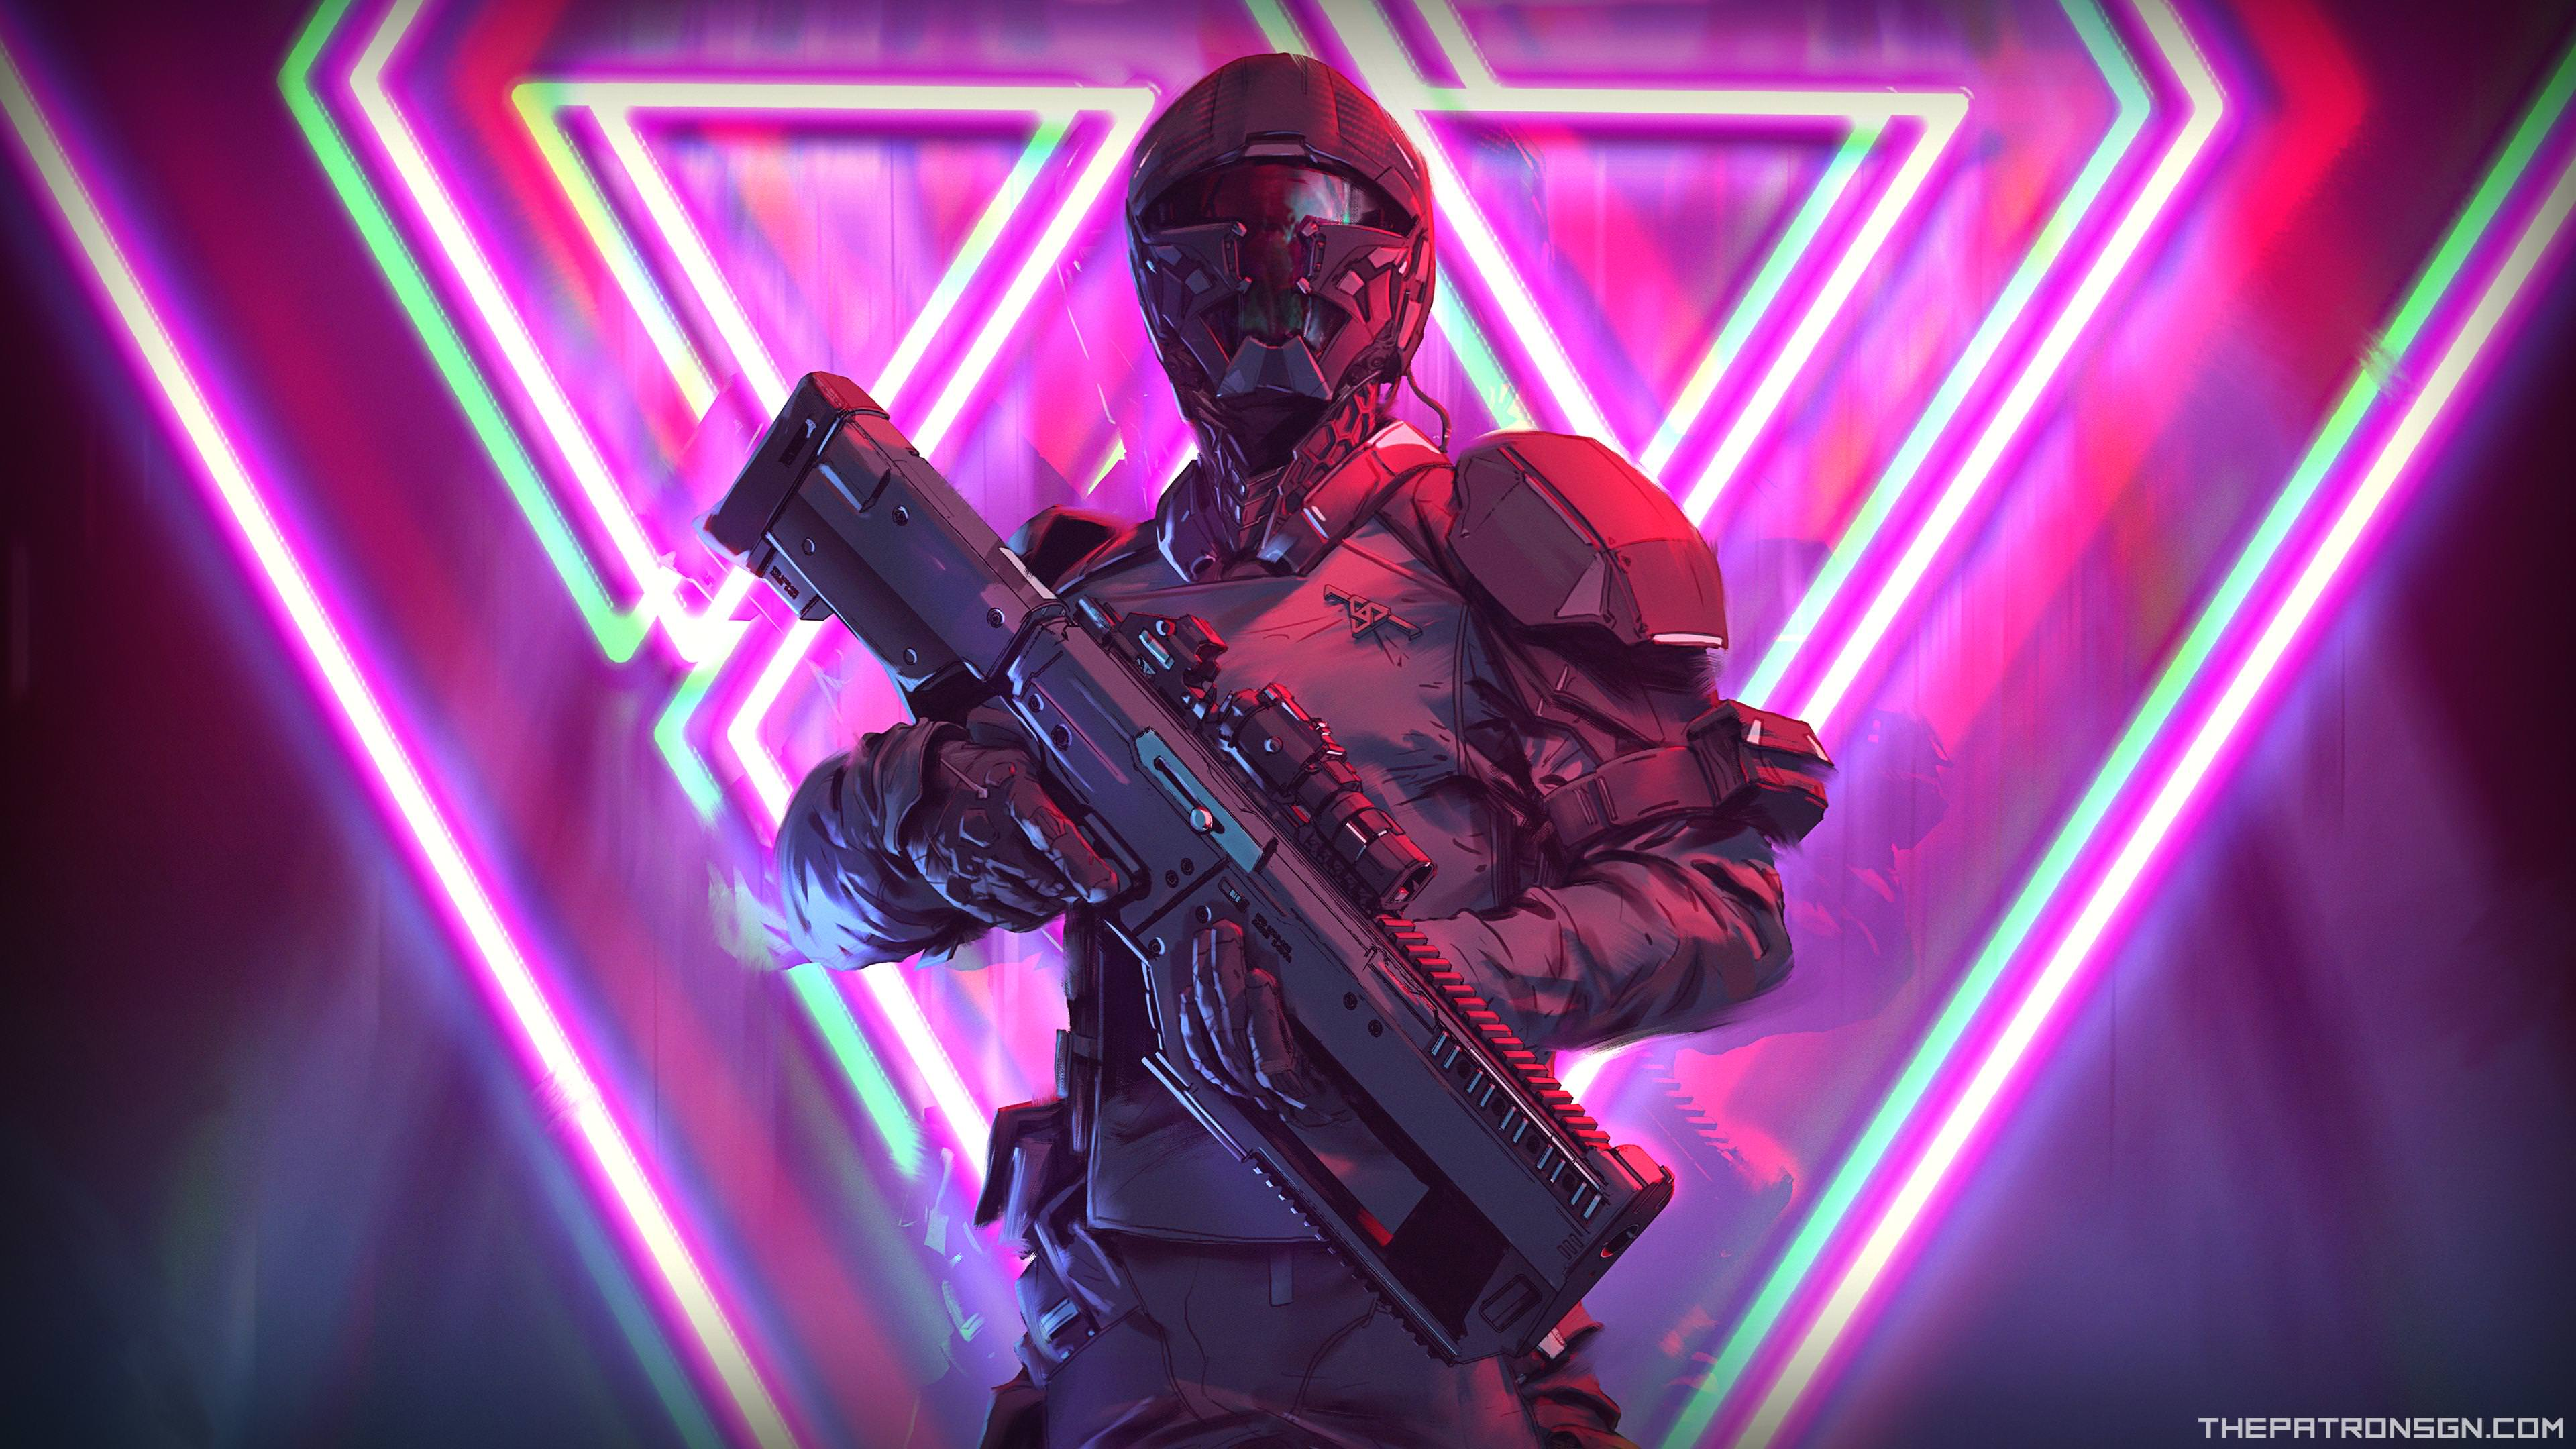 neon weapon soldier science fiction 4k 1540752879 - Neon Weapon Soldier Science Fiction 4k - soldier wallpapers, science fiction wallpapers, neon wallpapers, hd-wallpapers, digital art wallpapers, artwork wallpapers, artist wallpapers, 4k-wallpapers